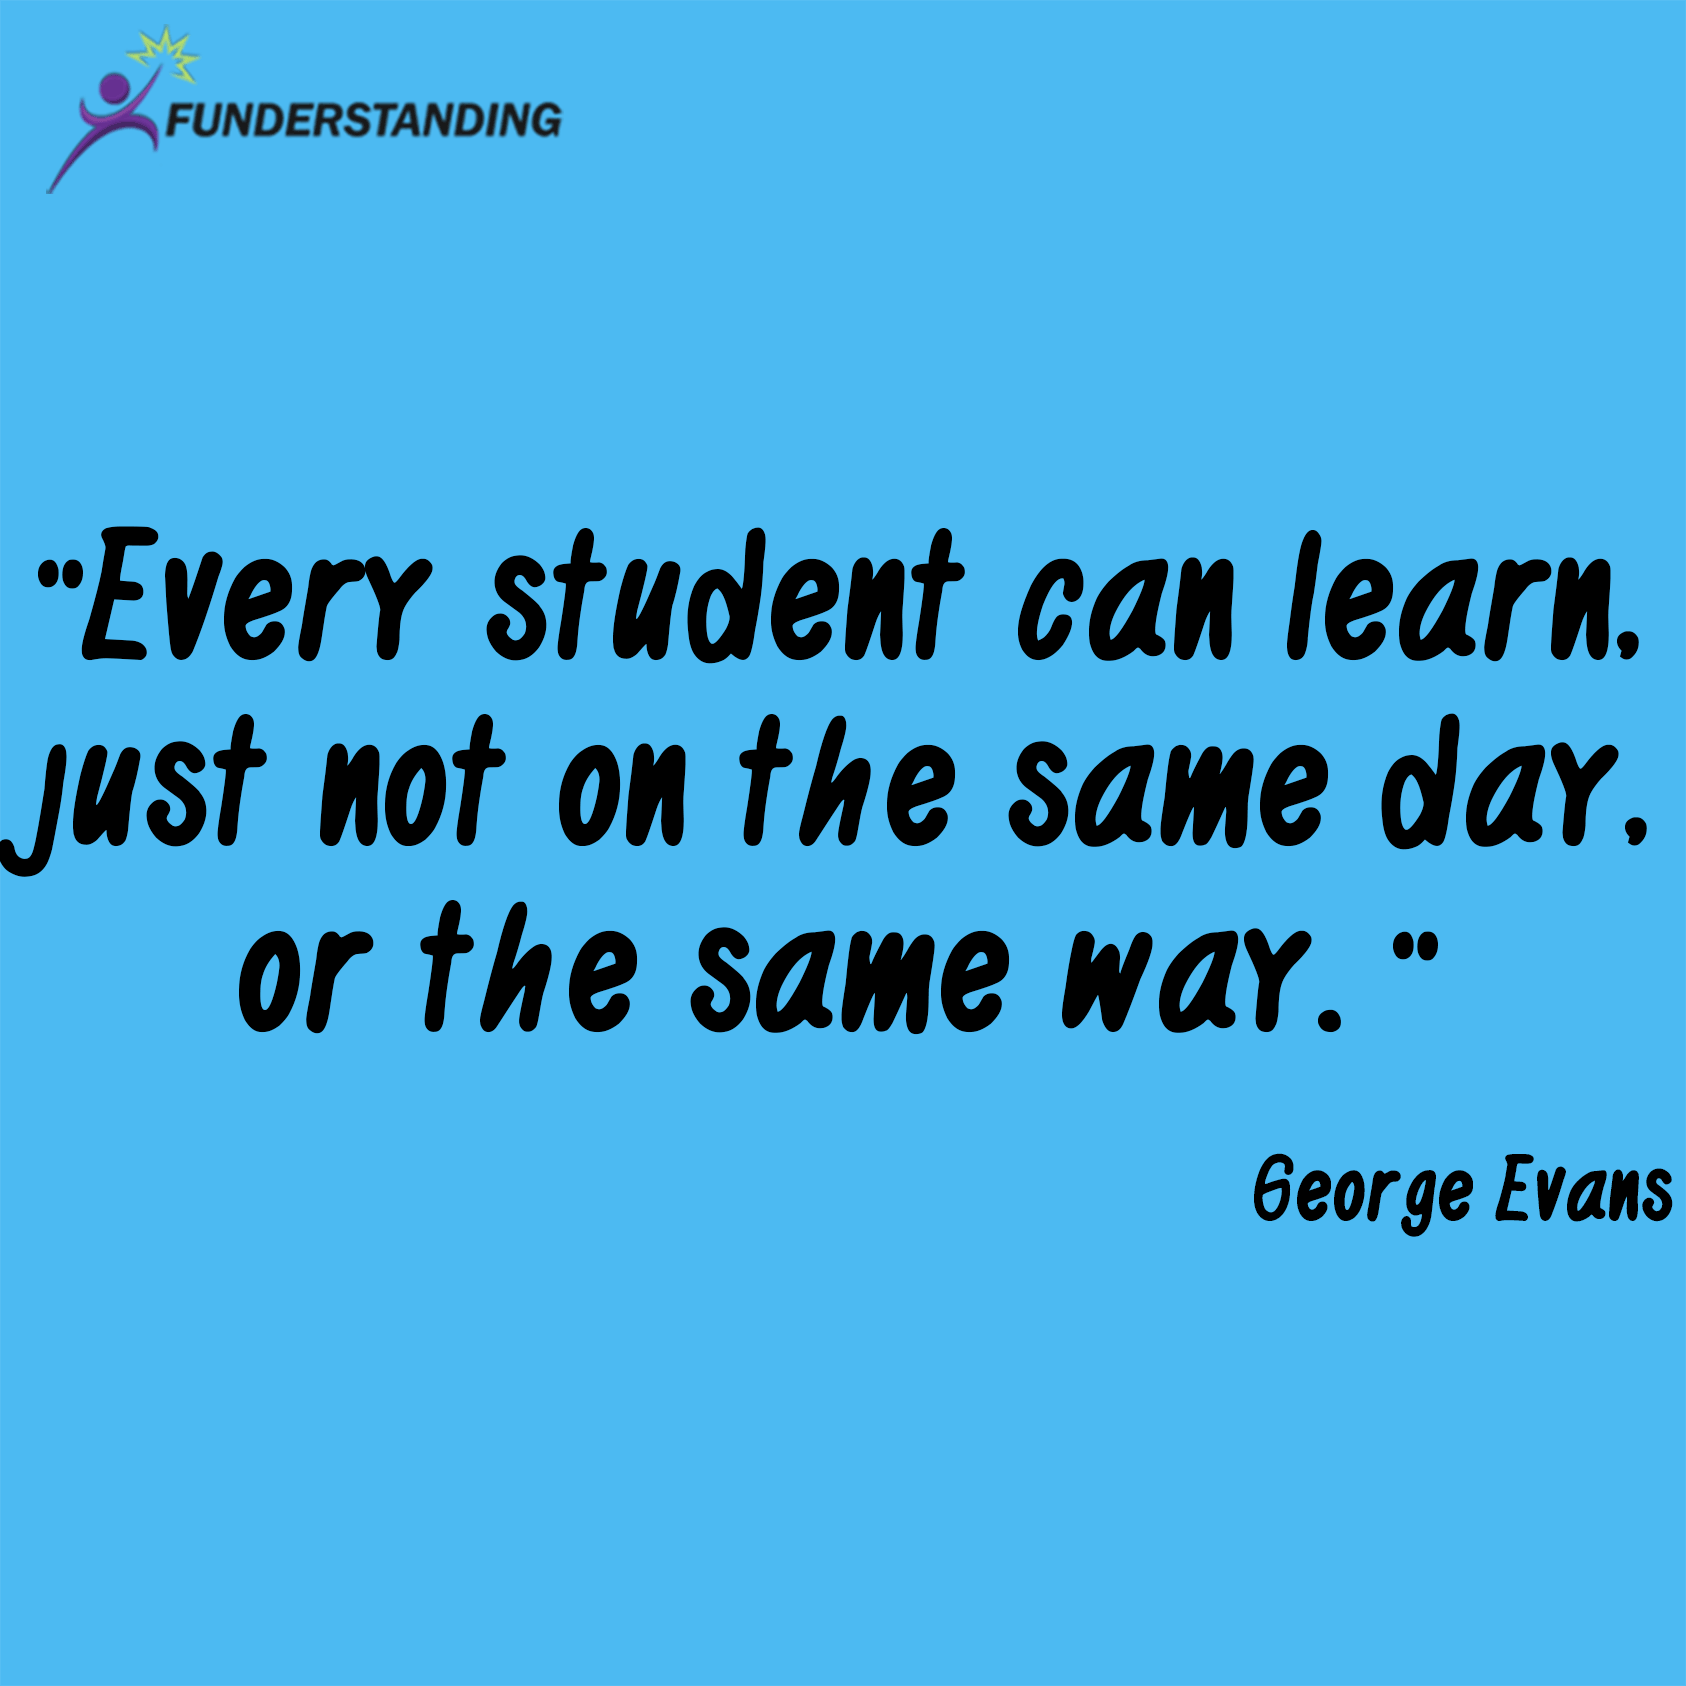 Educational Quotes Funderstanding Education Curriculum And